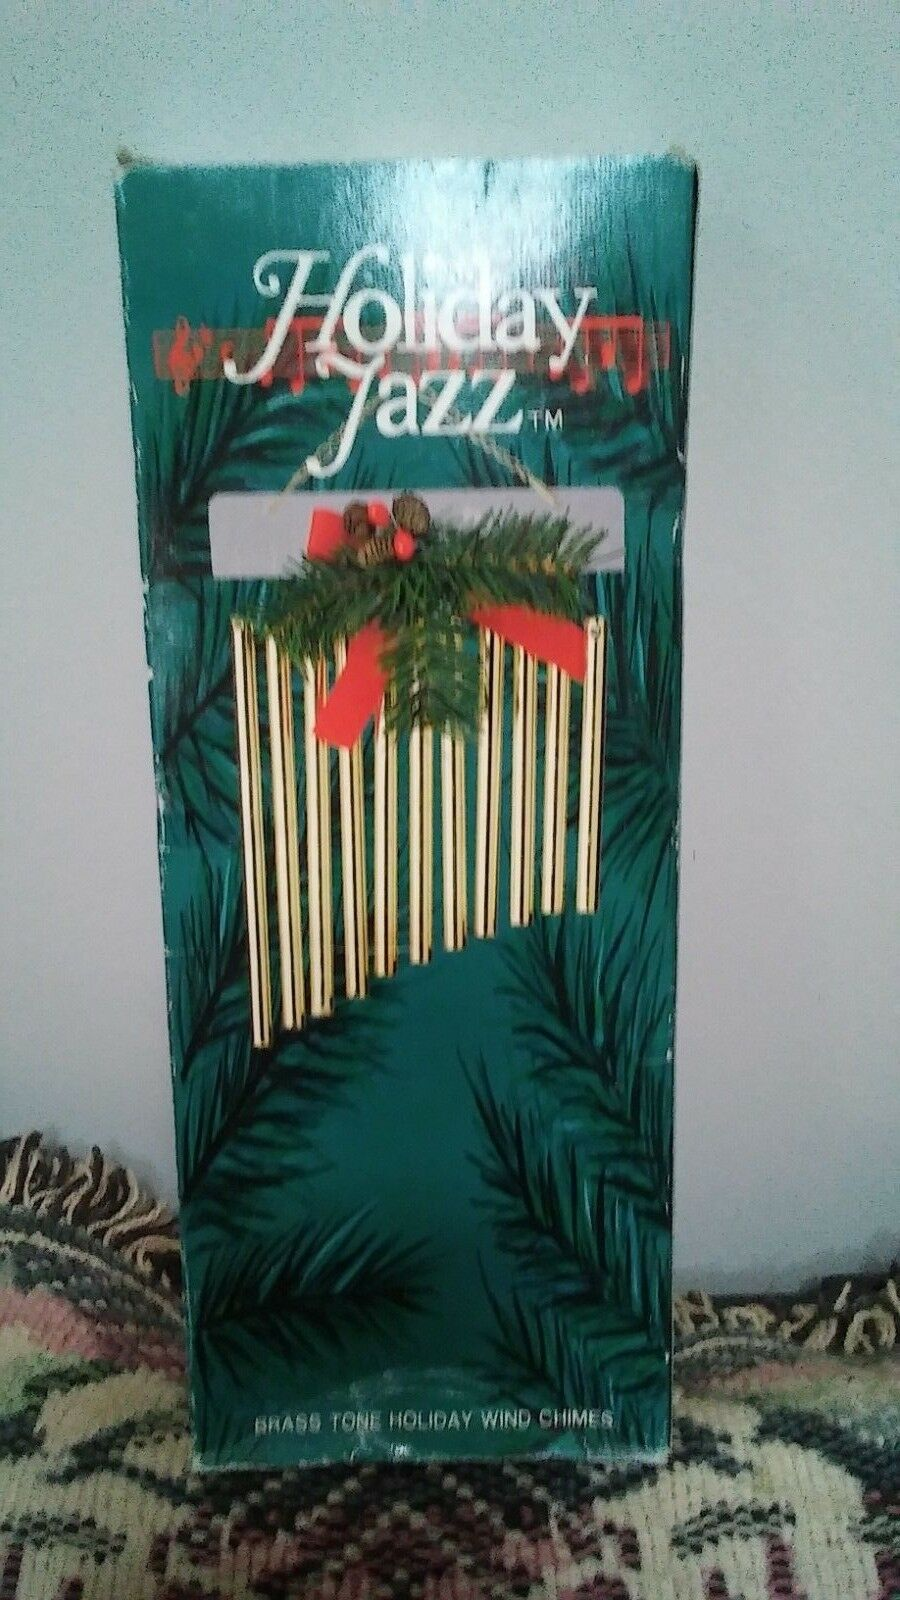 HOLIDAY JAZZ WIND CHIME WINTER OUTDOOR DECOR MADE IN TAIWAN WITH ORIGINAL BOX